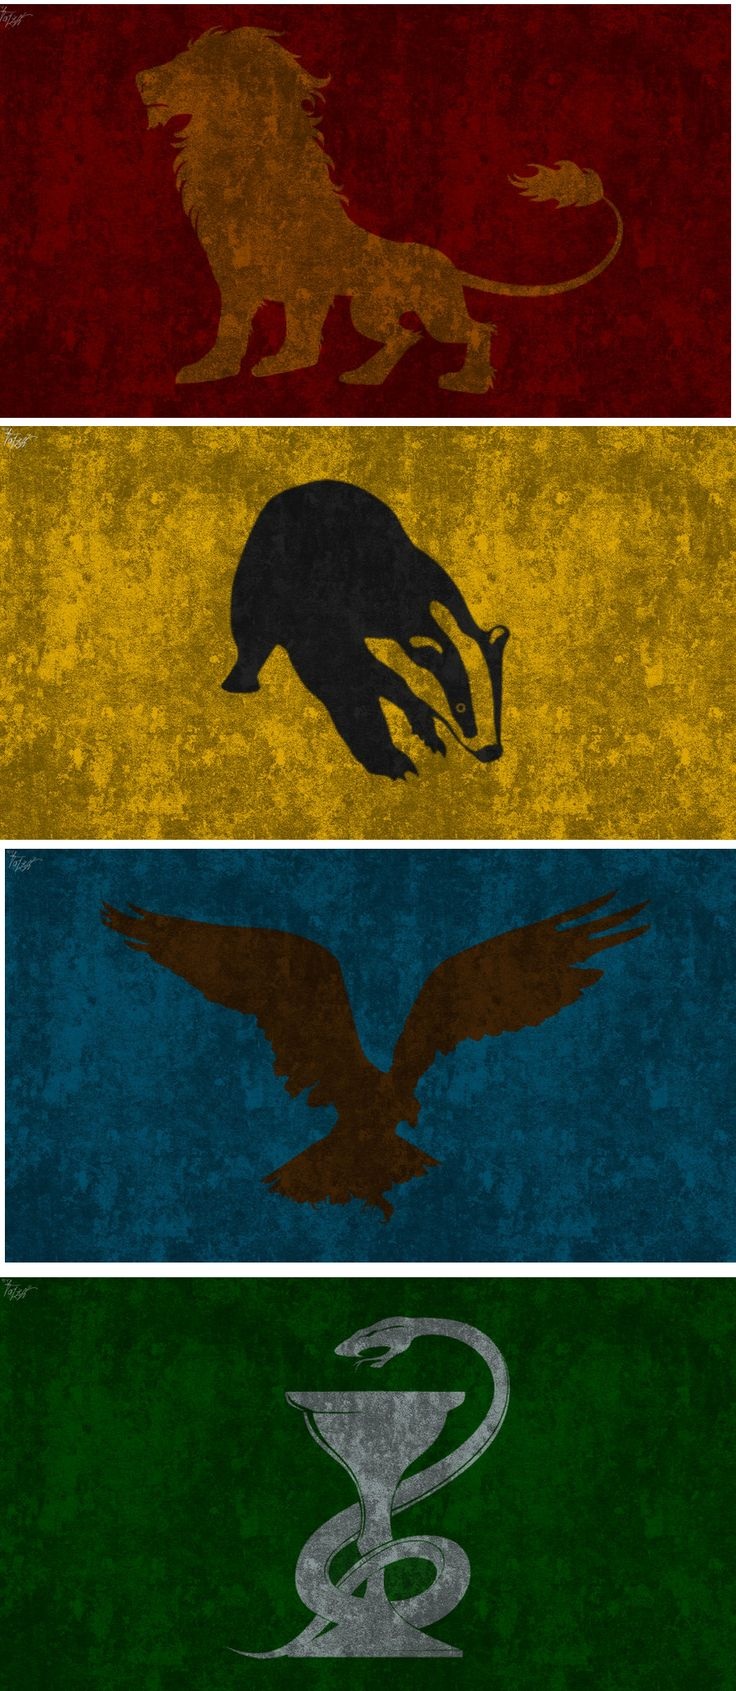 Use These Animals Cut Out As Templates For Banners In